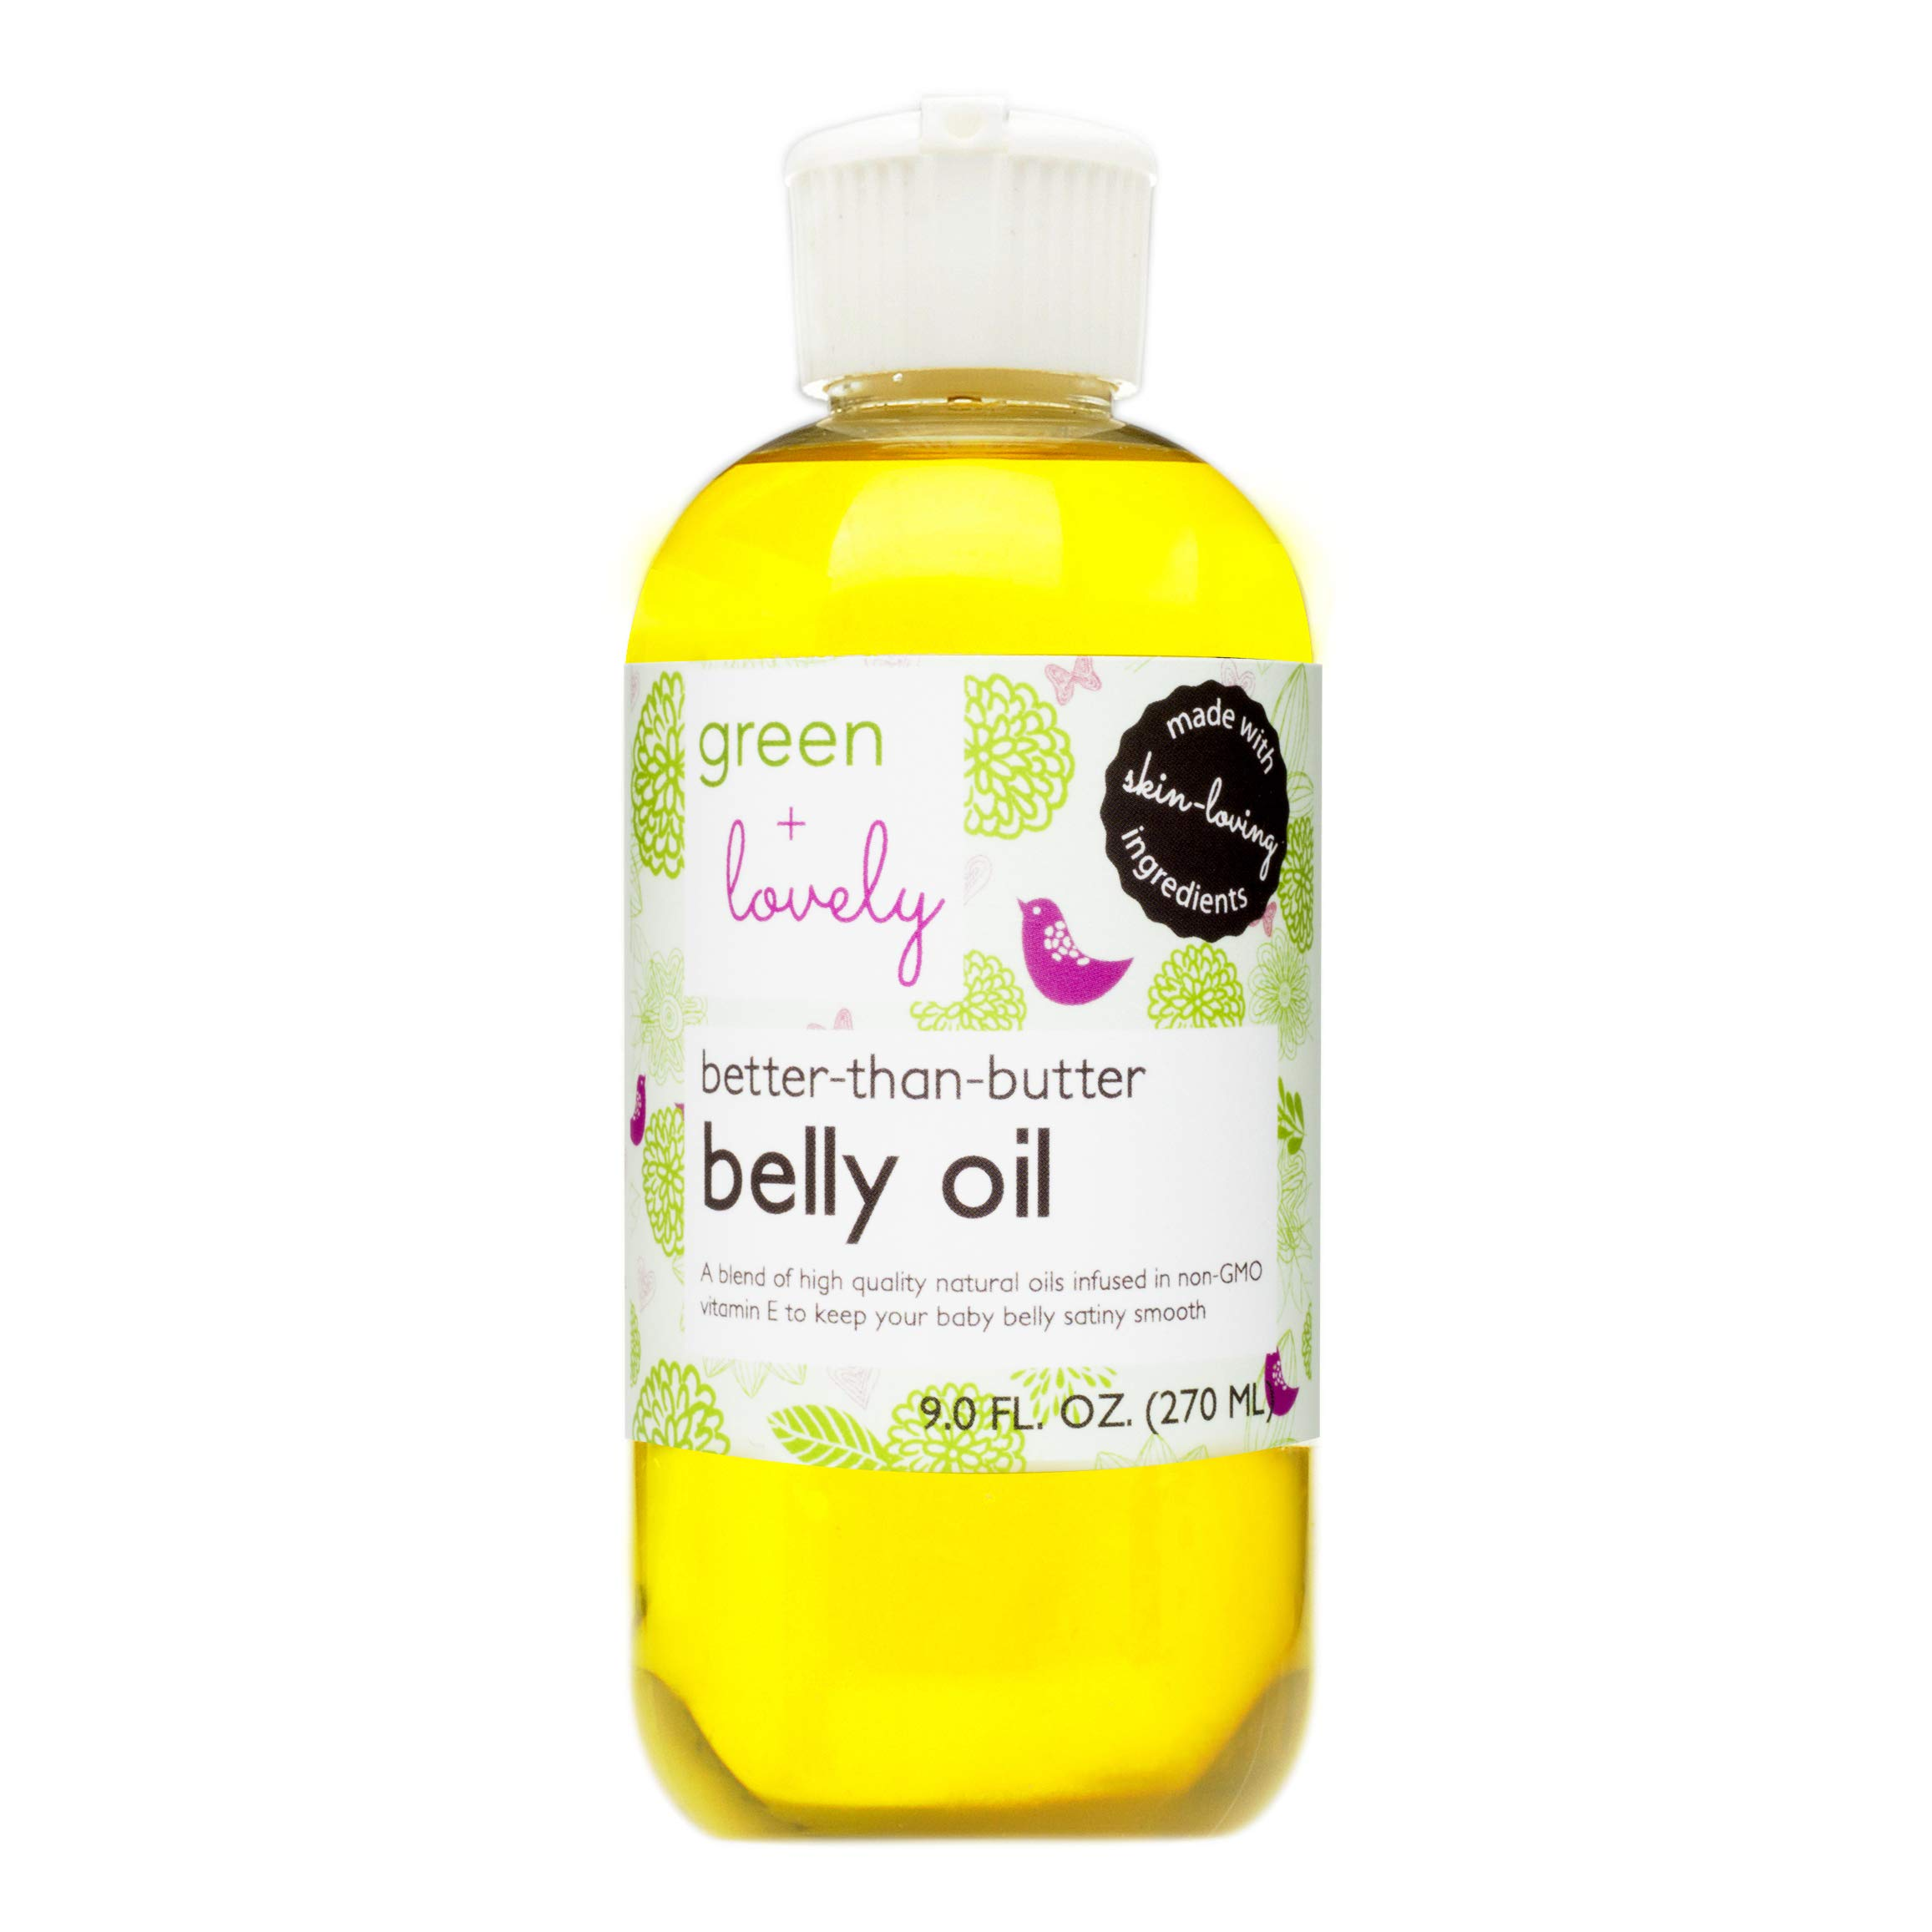 Better than Butter Belly Oil(Lavender)   Pregnancy Stretch Mark Prevention   9 fl oz. Lasts for up to 6 Months   Natural Oil and Vitamin E Enriched for Amazing Skin Pre/Post Pregnancy by Green + Lovely